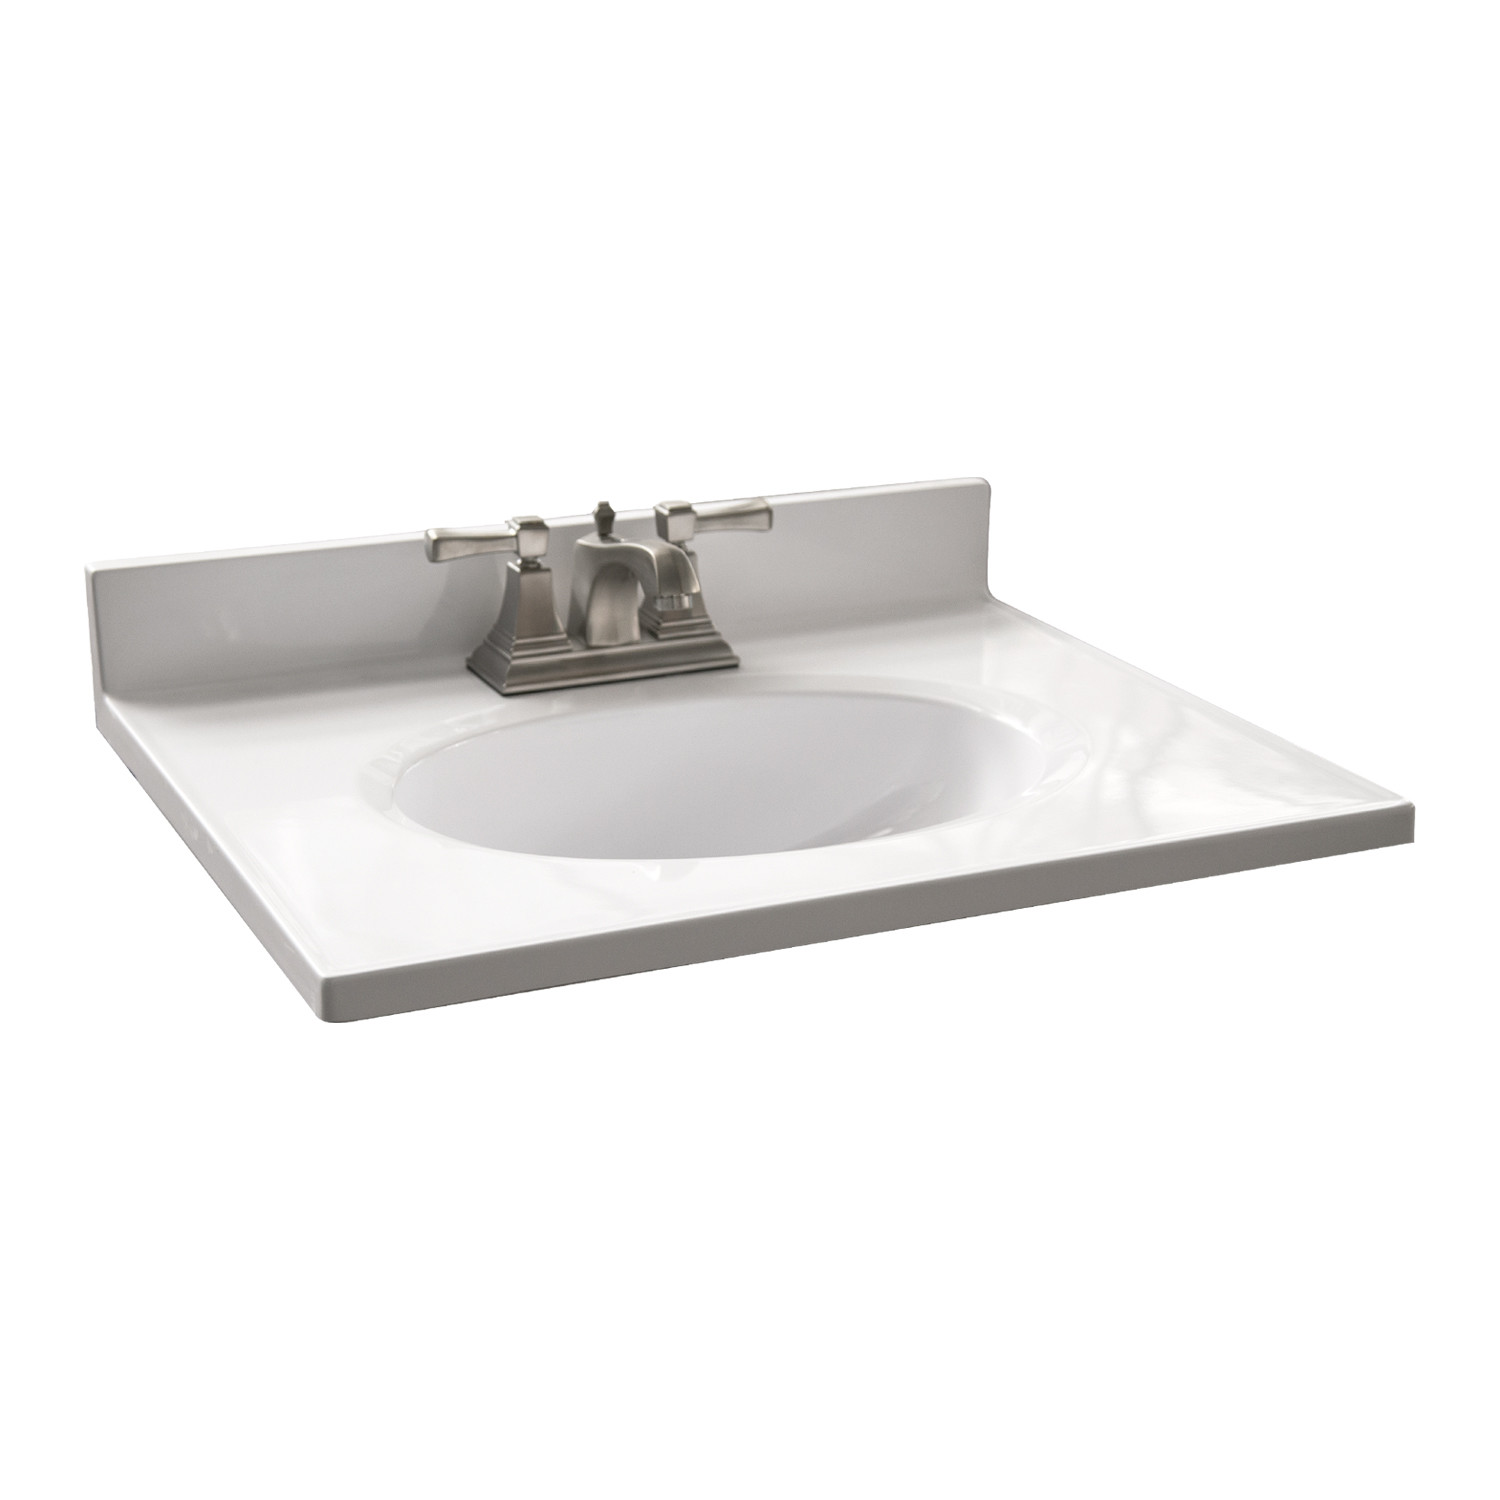 design house 25 in w cultured marble vanity top in white with solid white bowl